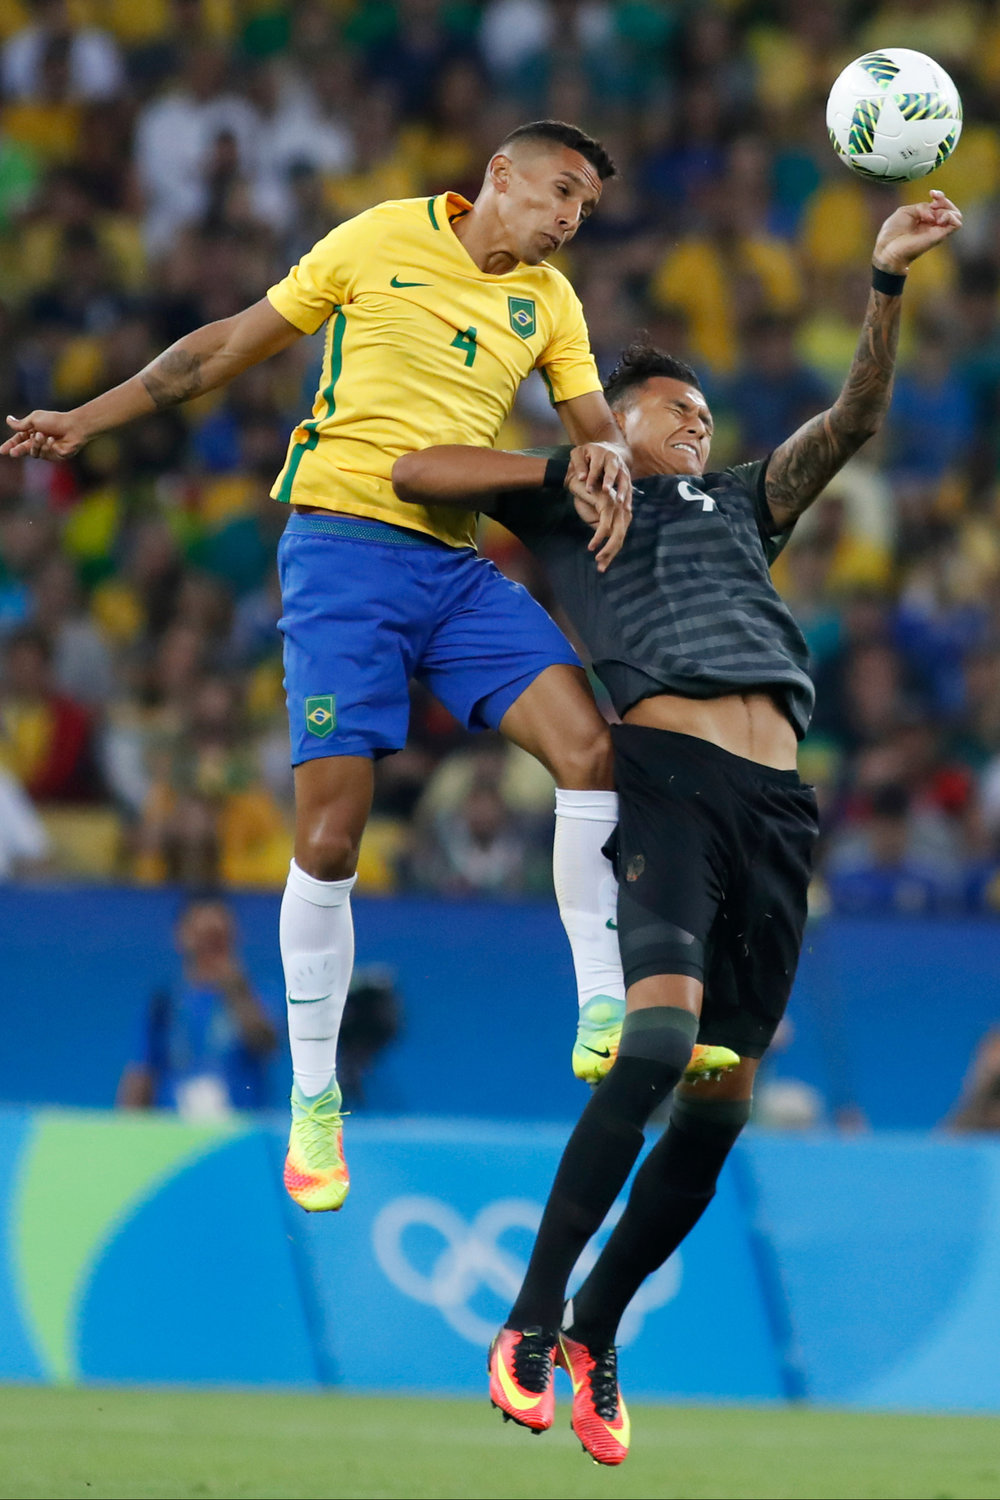 Brazil defenseman Marquinhos (4) and Germany forward Davie Selke (9) go for a header in the first half of the Men's Gold Medal soccer match at the 2016 Rio Summer Olympics in Rio de Janeiro, Brazil, on August 20, 2016.